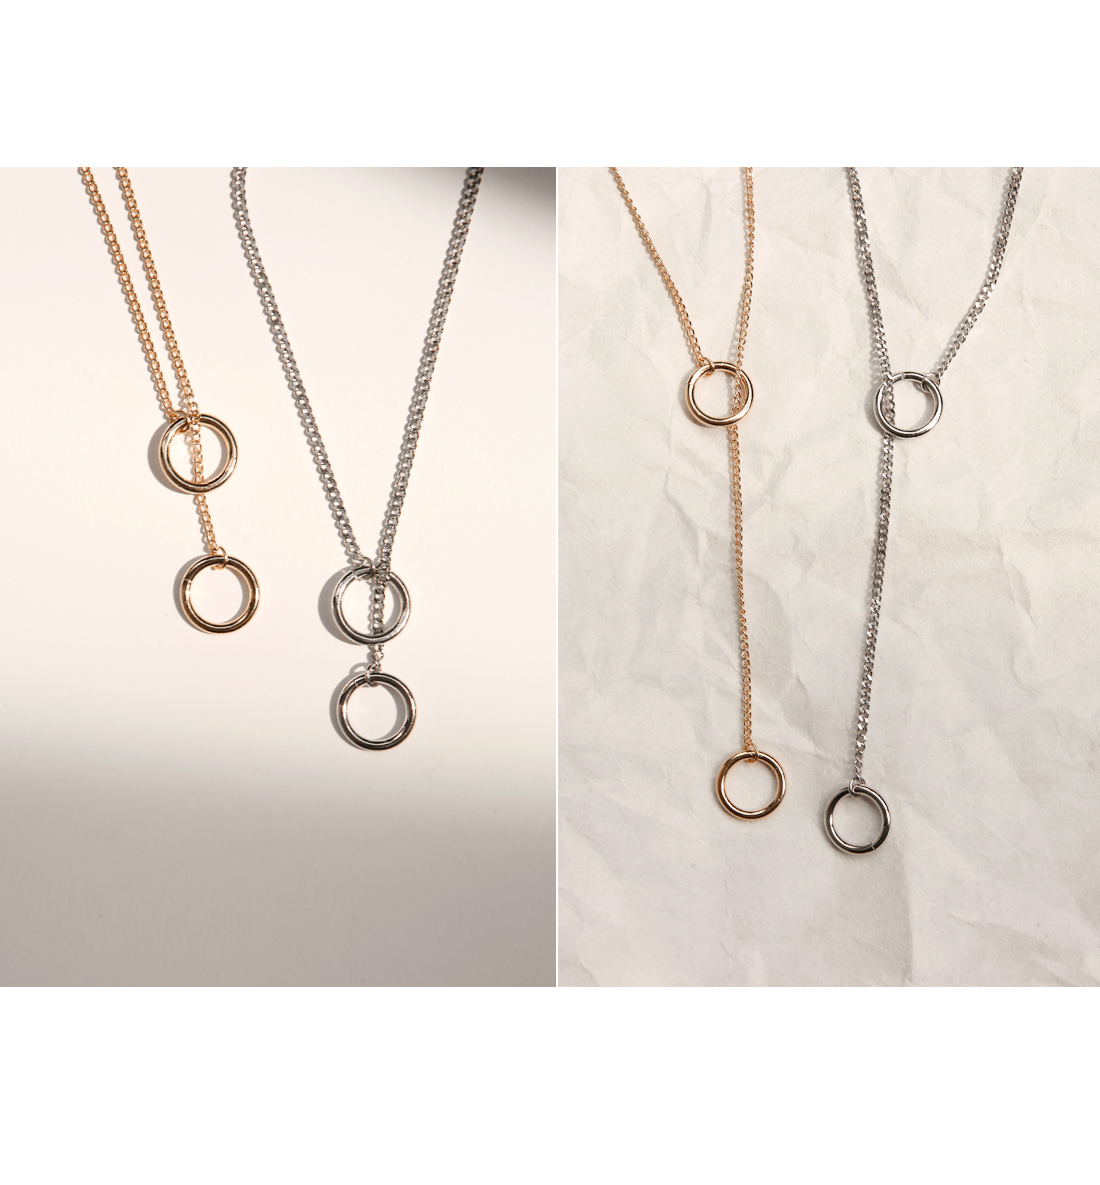 CHAIN DOUBLE RING NECKLACE